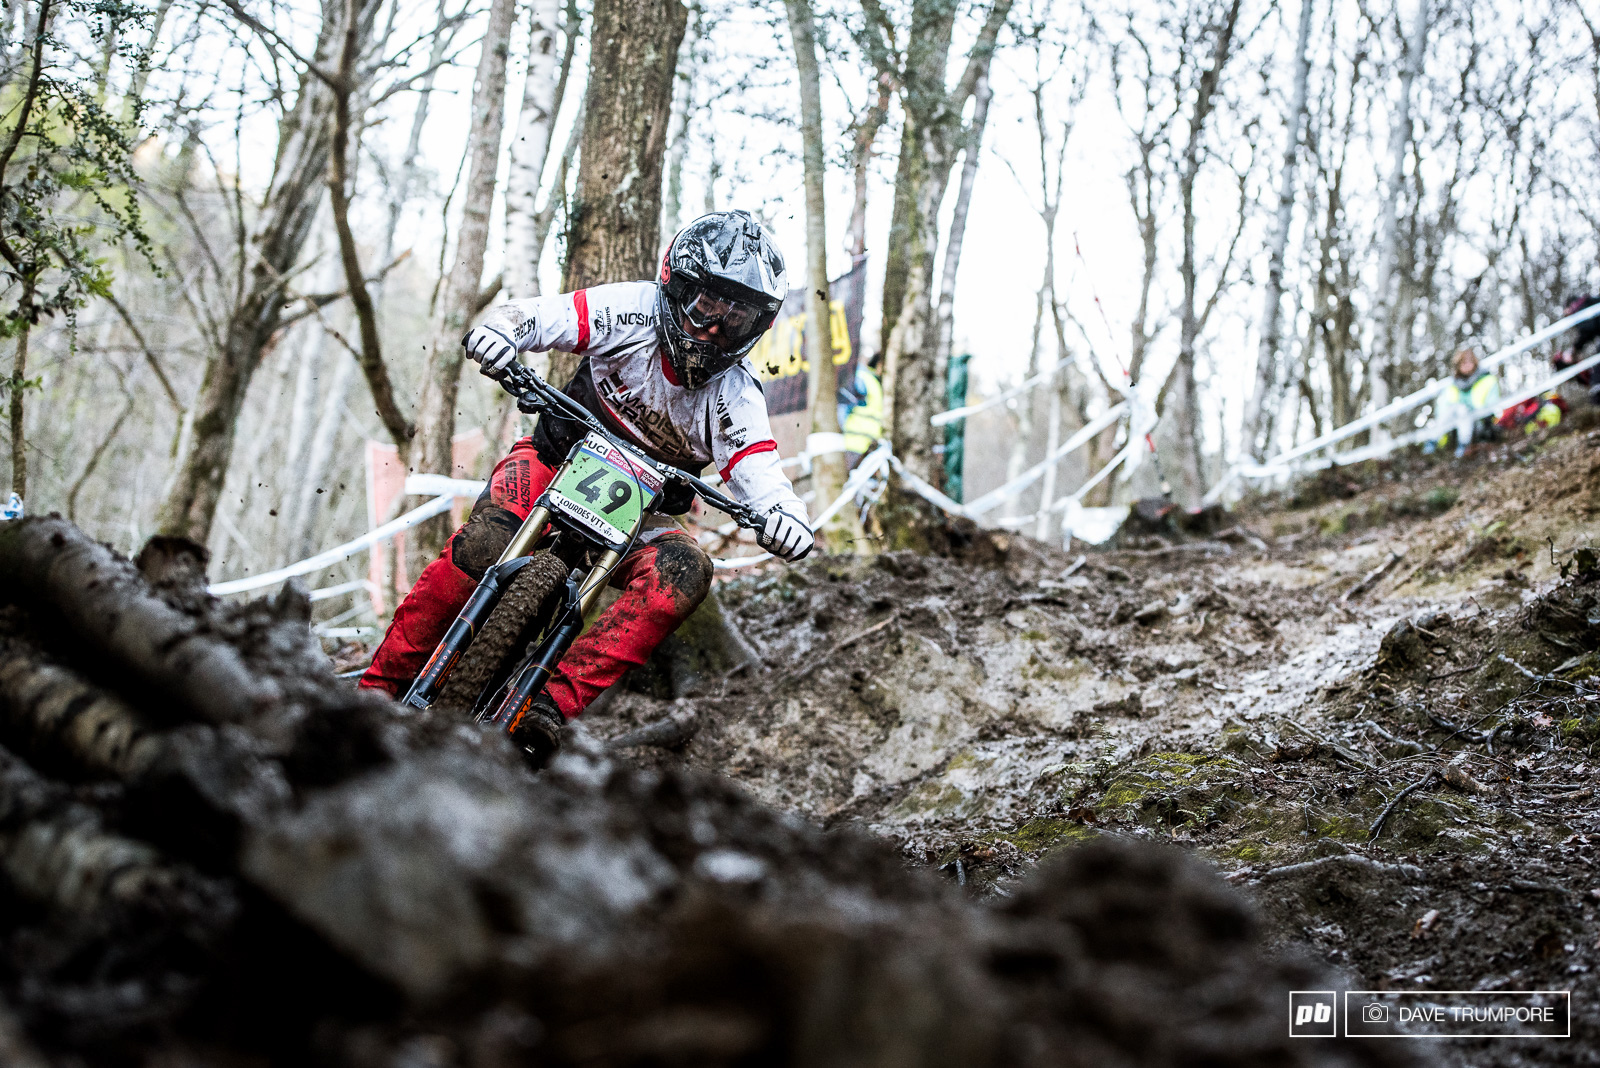 Matt Walker was flying through the mud and would take 2nd in the Junior Men s race.